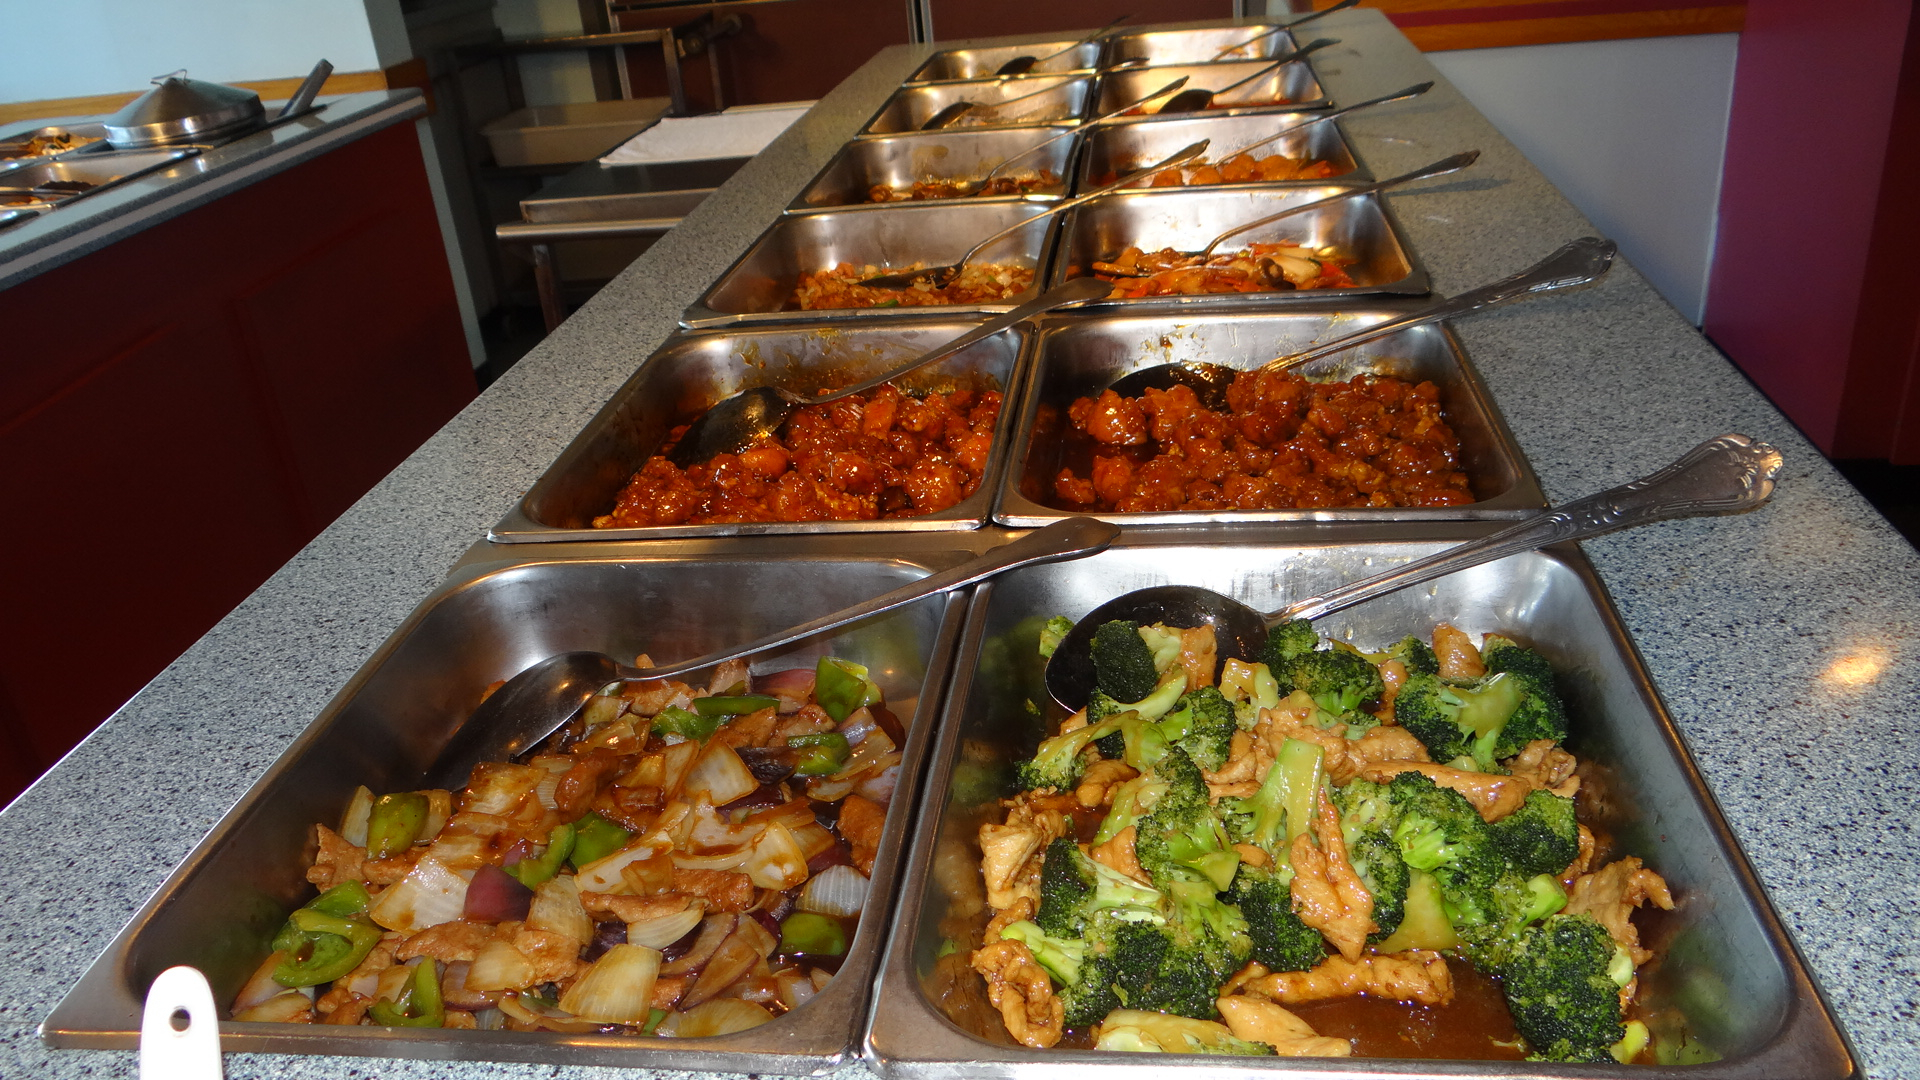 Young Chinese Buffet 1668 Meriden Waterbury Rd Milldale Ct 06467 Center Plaza